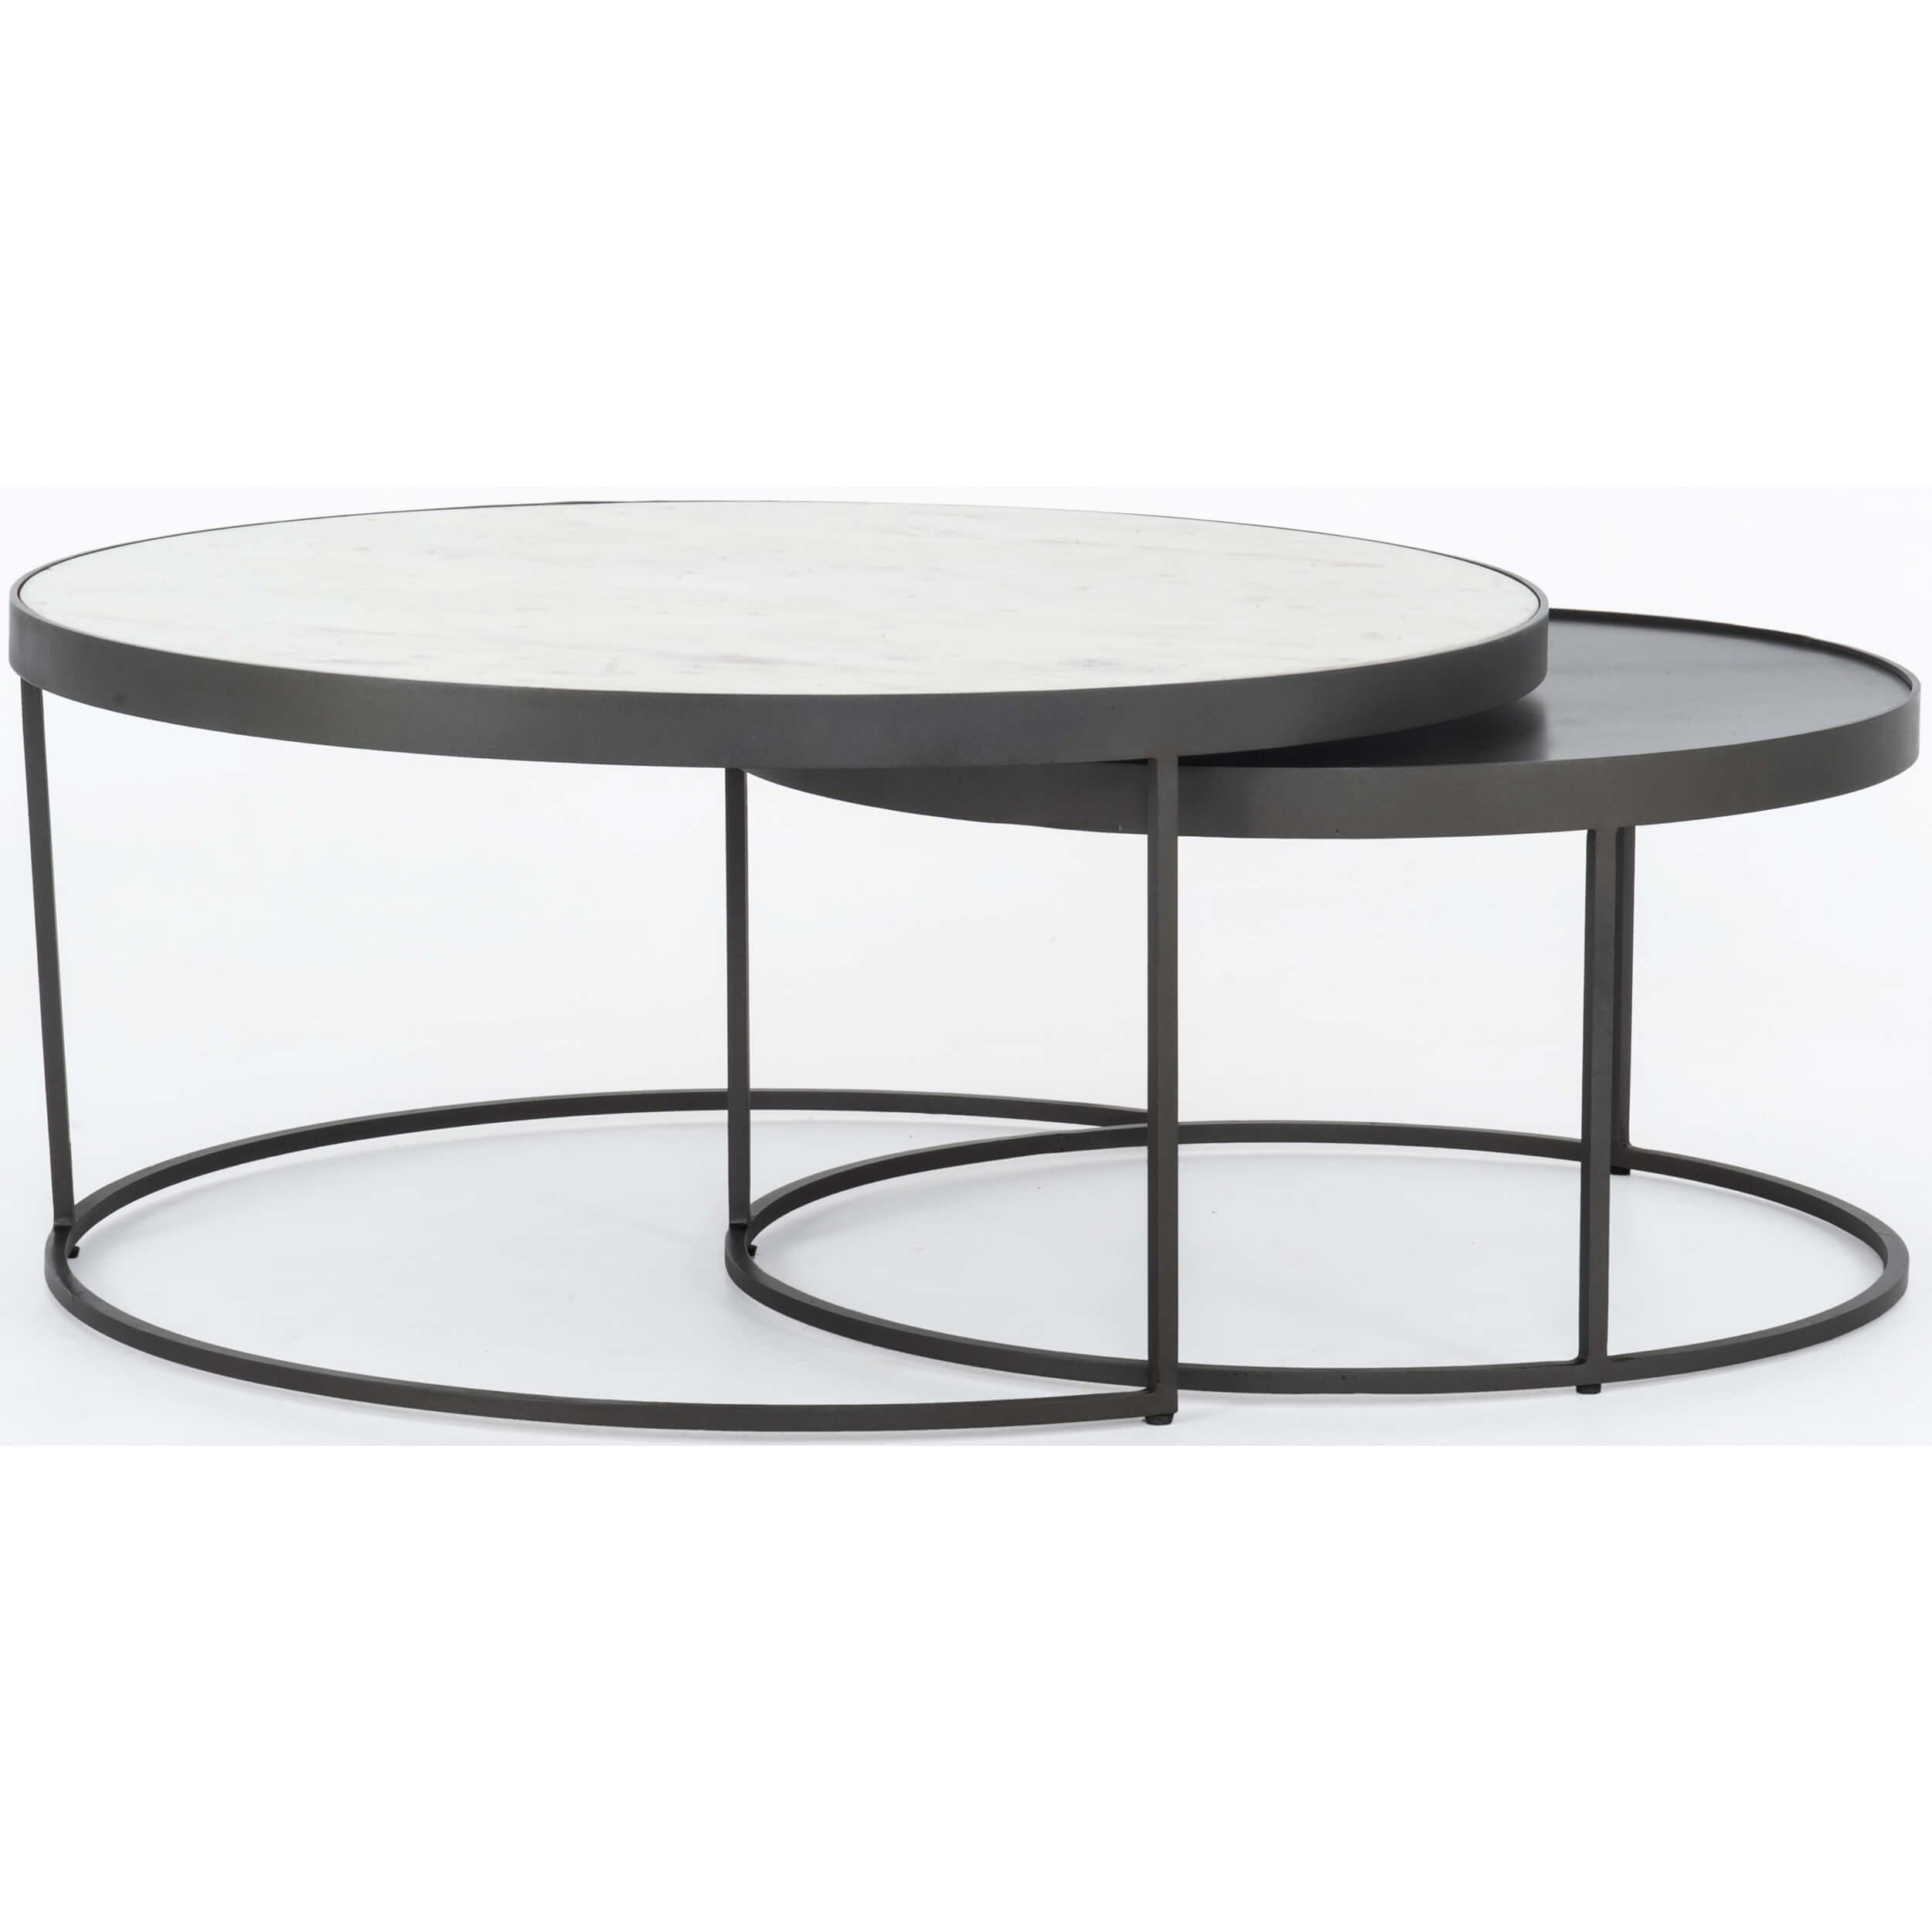 Evelyn Round Nesting Coffee Table Round Nesting Coffee Tables